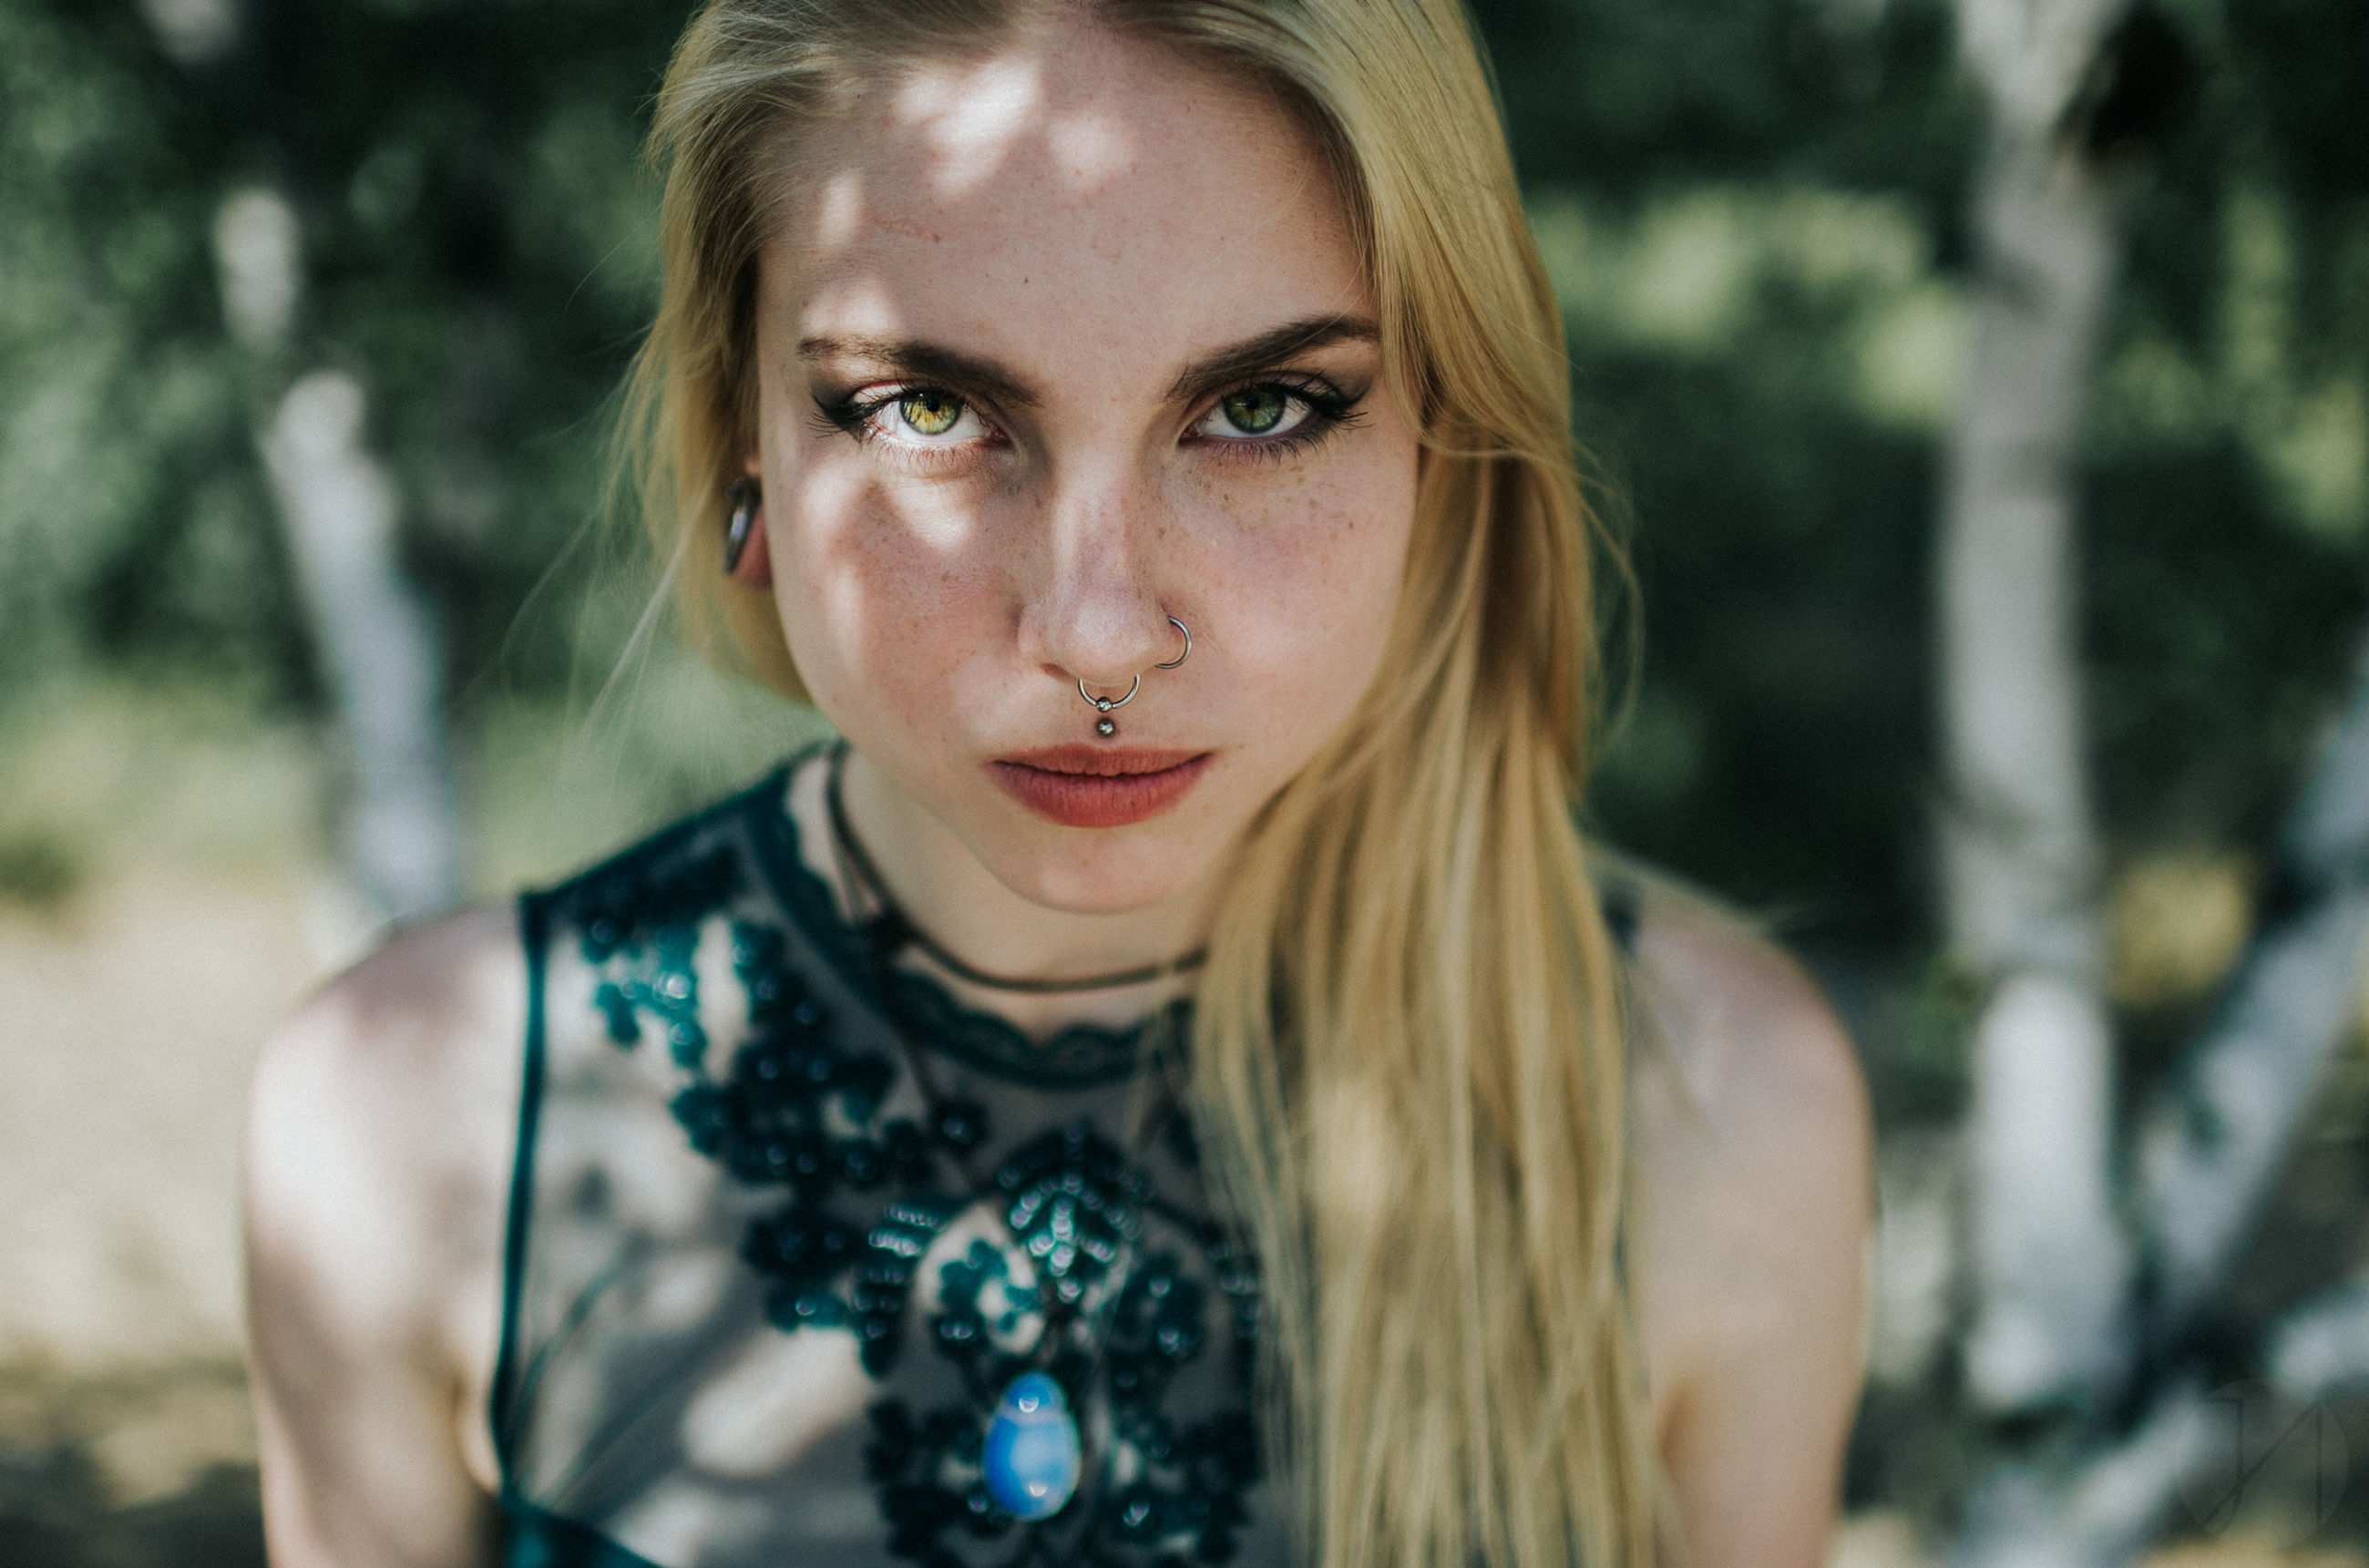 portrait, lifestyles, headshot, focus on foreground, leisure activity, close-up, casual clothing, human face, confidence, day, outdoors, selective focus